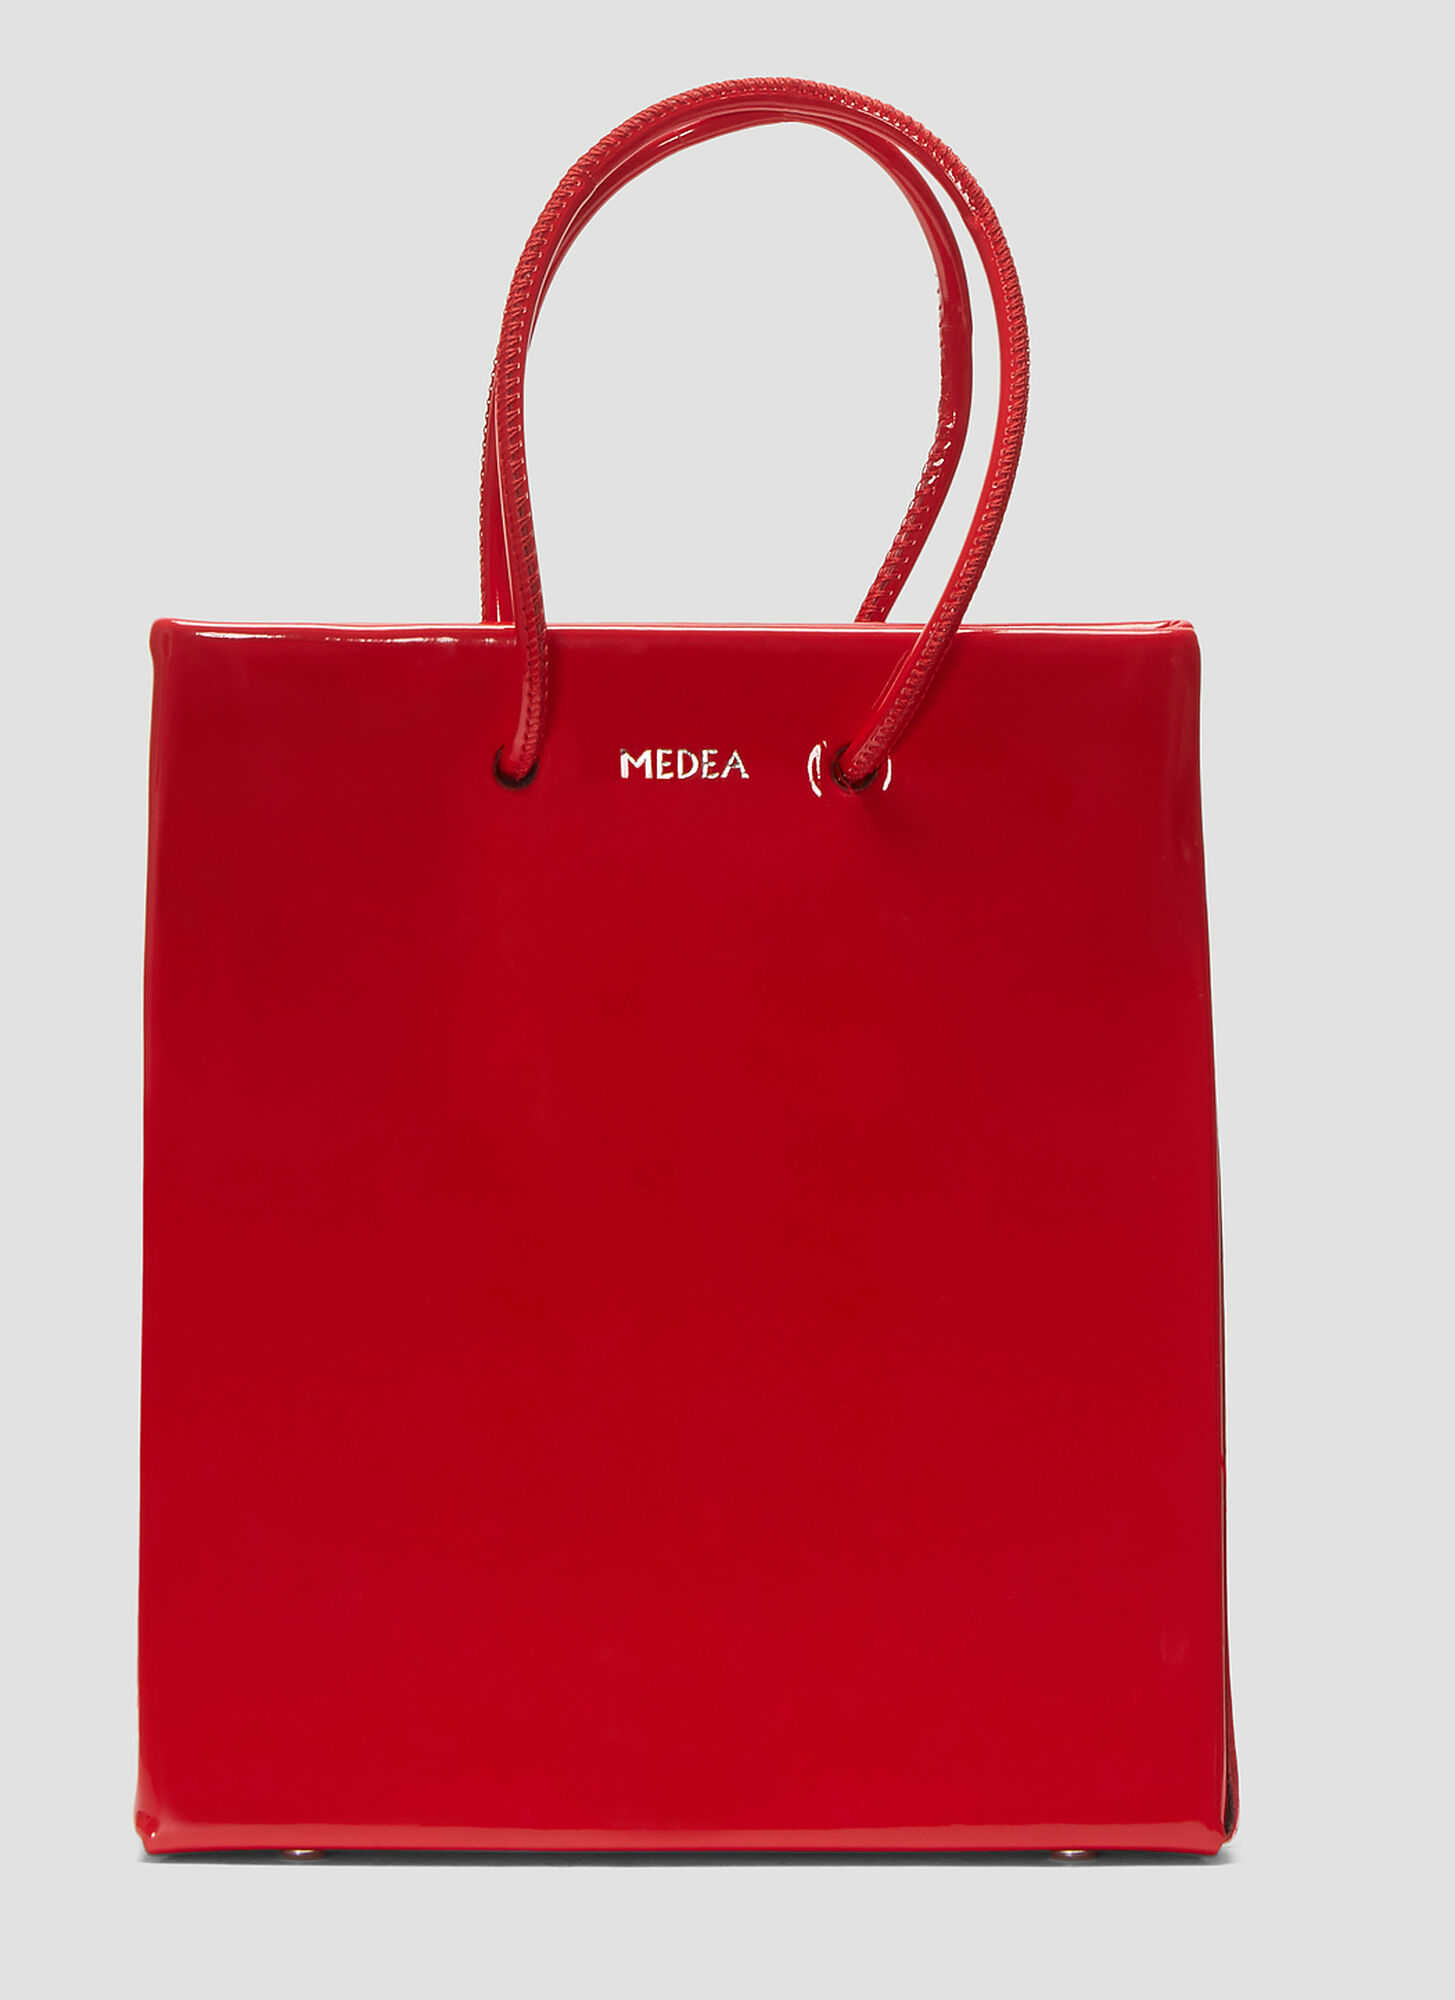 Medea Short Vinile Shopper Bag in Red